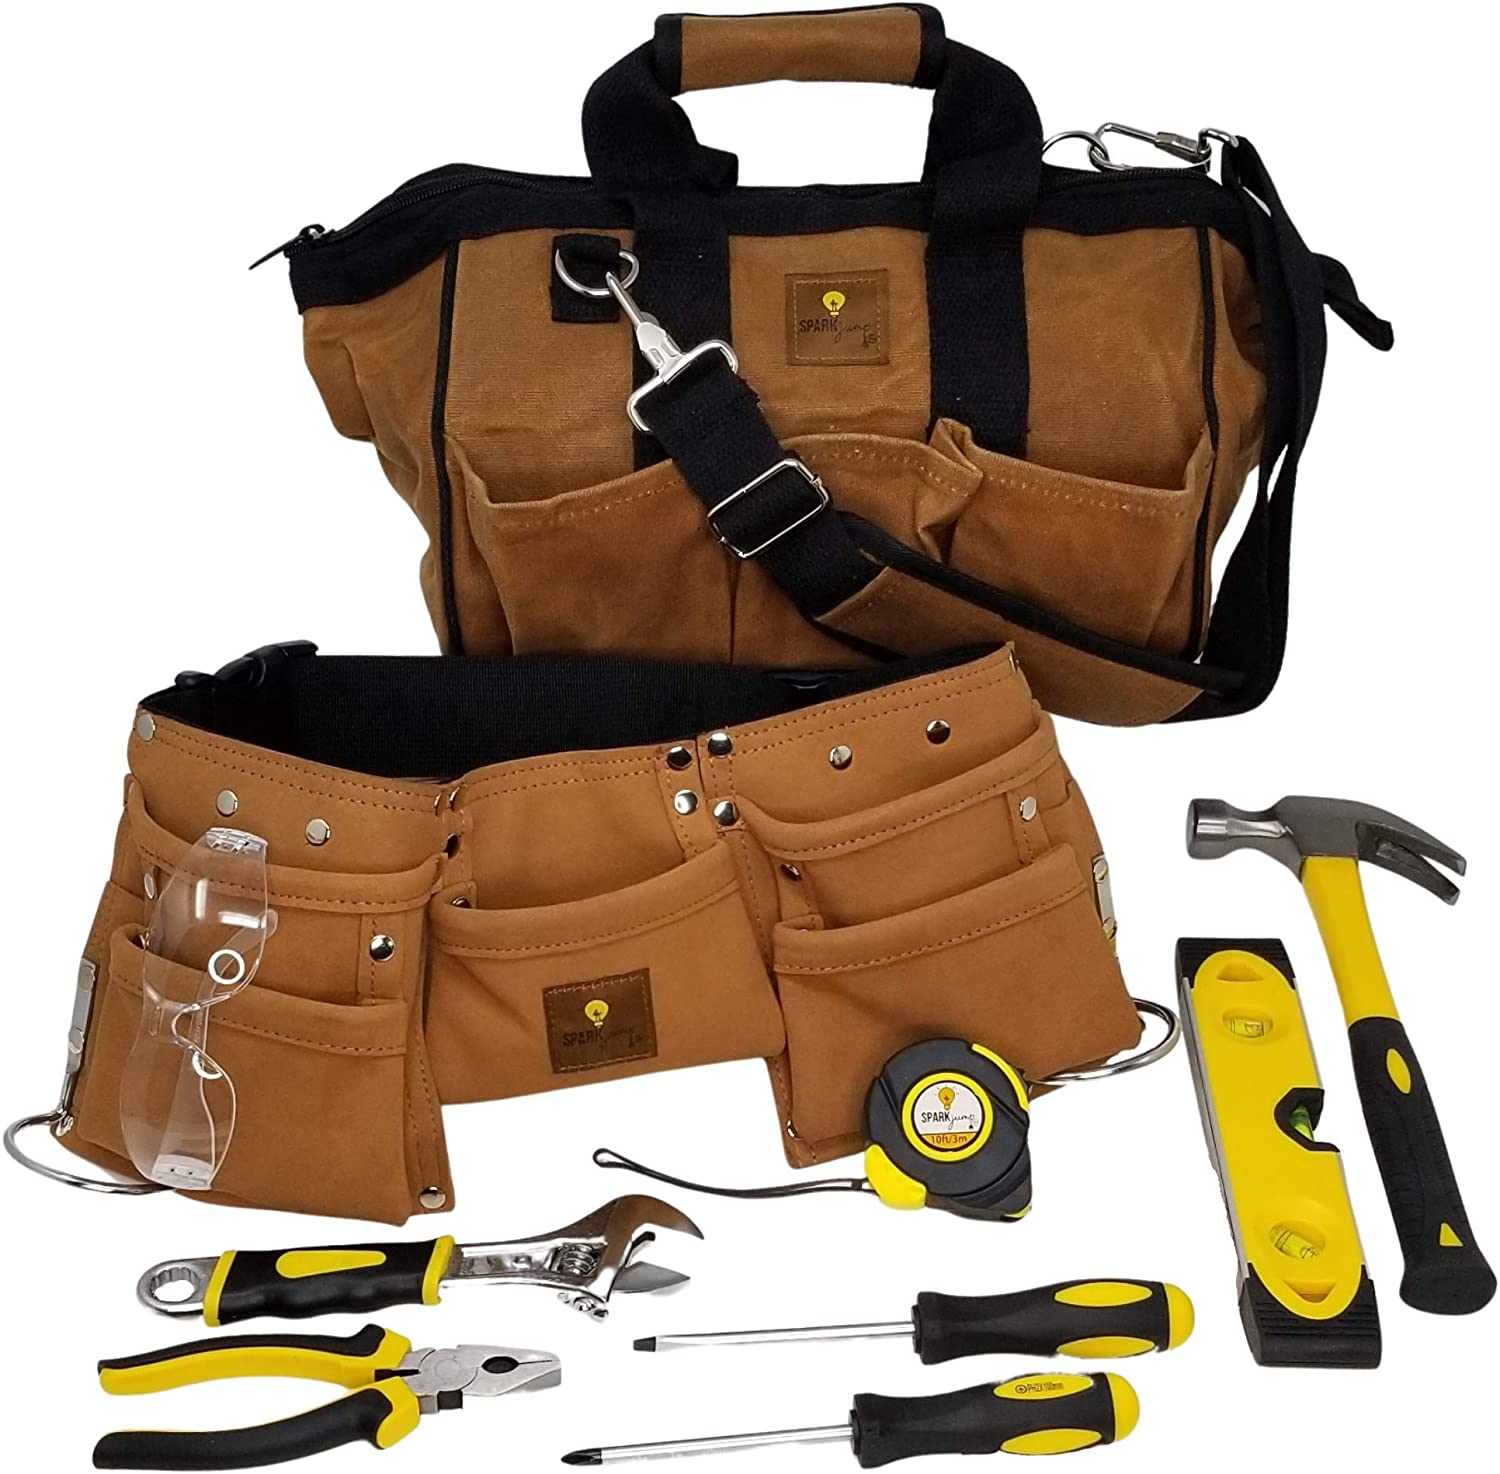 SparkJump Deluxe Kids Tool Save money Set Kit Durabl Real with Hand Tools Oklahoma City Mall -